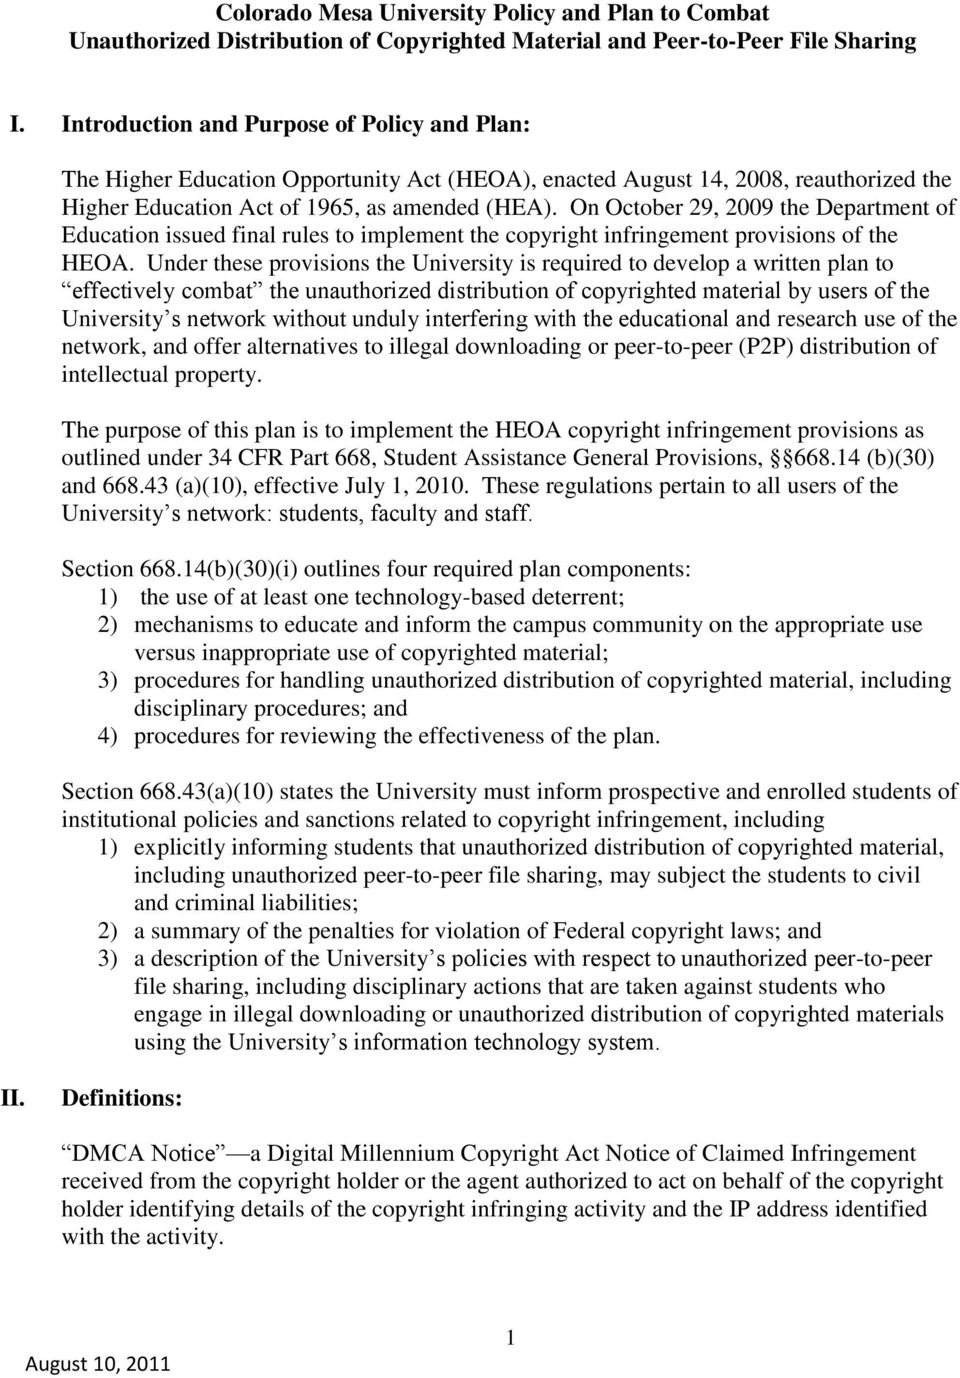 On October 29, 2009 the Department of Education issued final rules to implement the copyright infringement provisions of the HEOA.